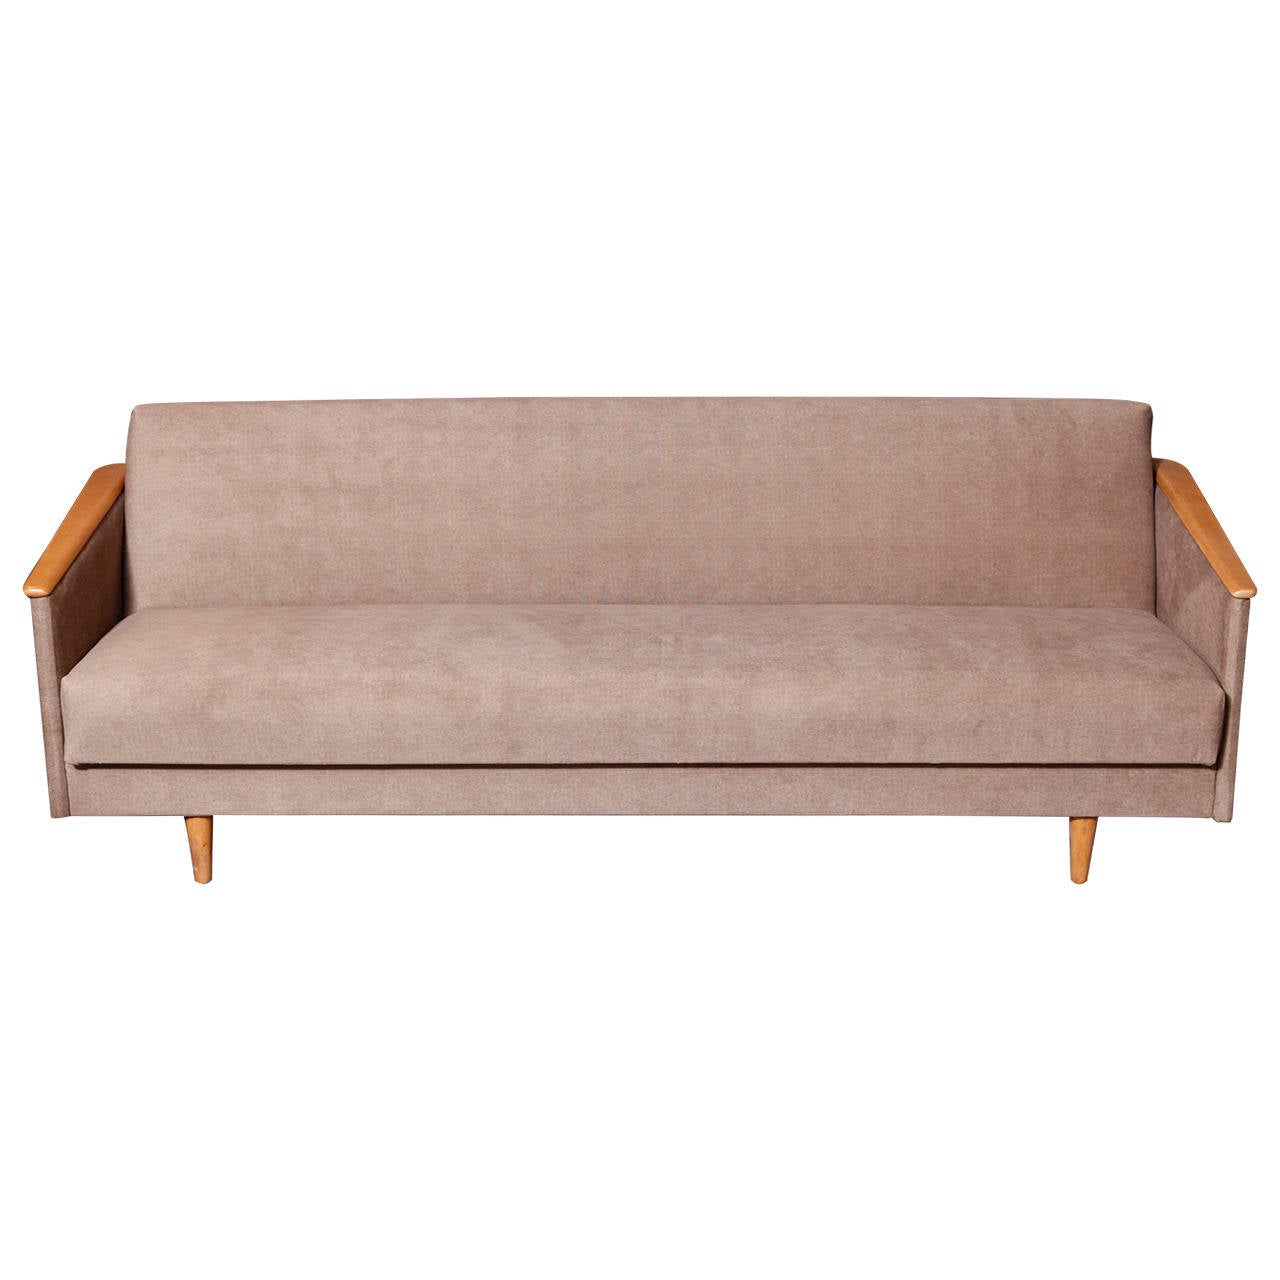 Convertible Sofa At 1stdibs